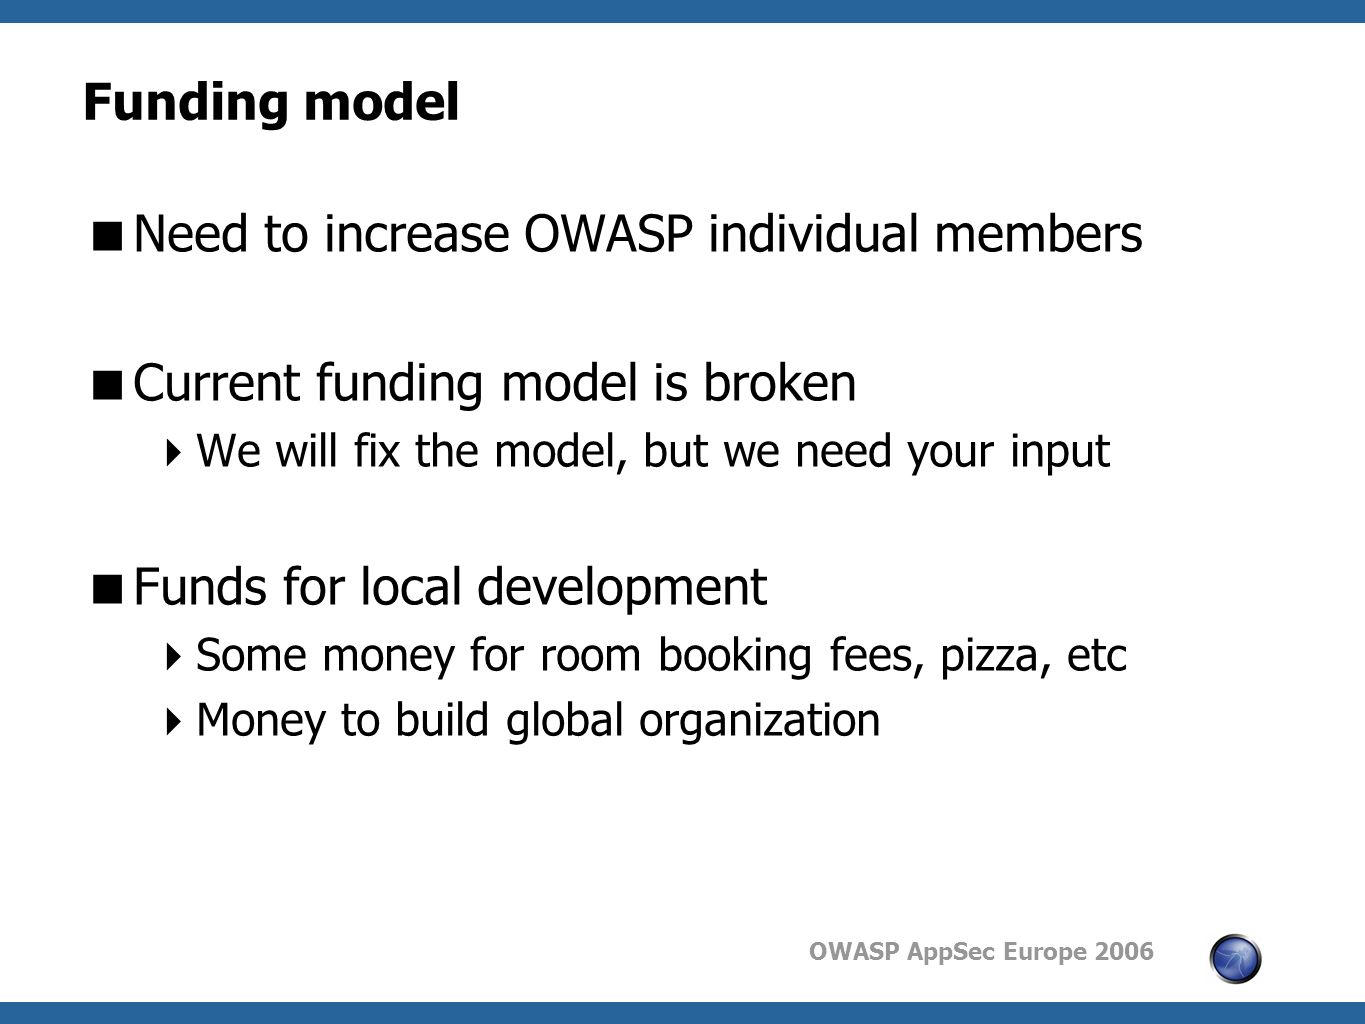 OWASP AppSec Europe 2006 Funding model  Need to increase OWASP individual members  Current funding model is broken  We will fix the model, but we need your input  Funds for local development  Some money for room booking fees, pizza, etc  Money to build global organization